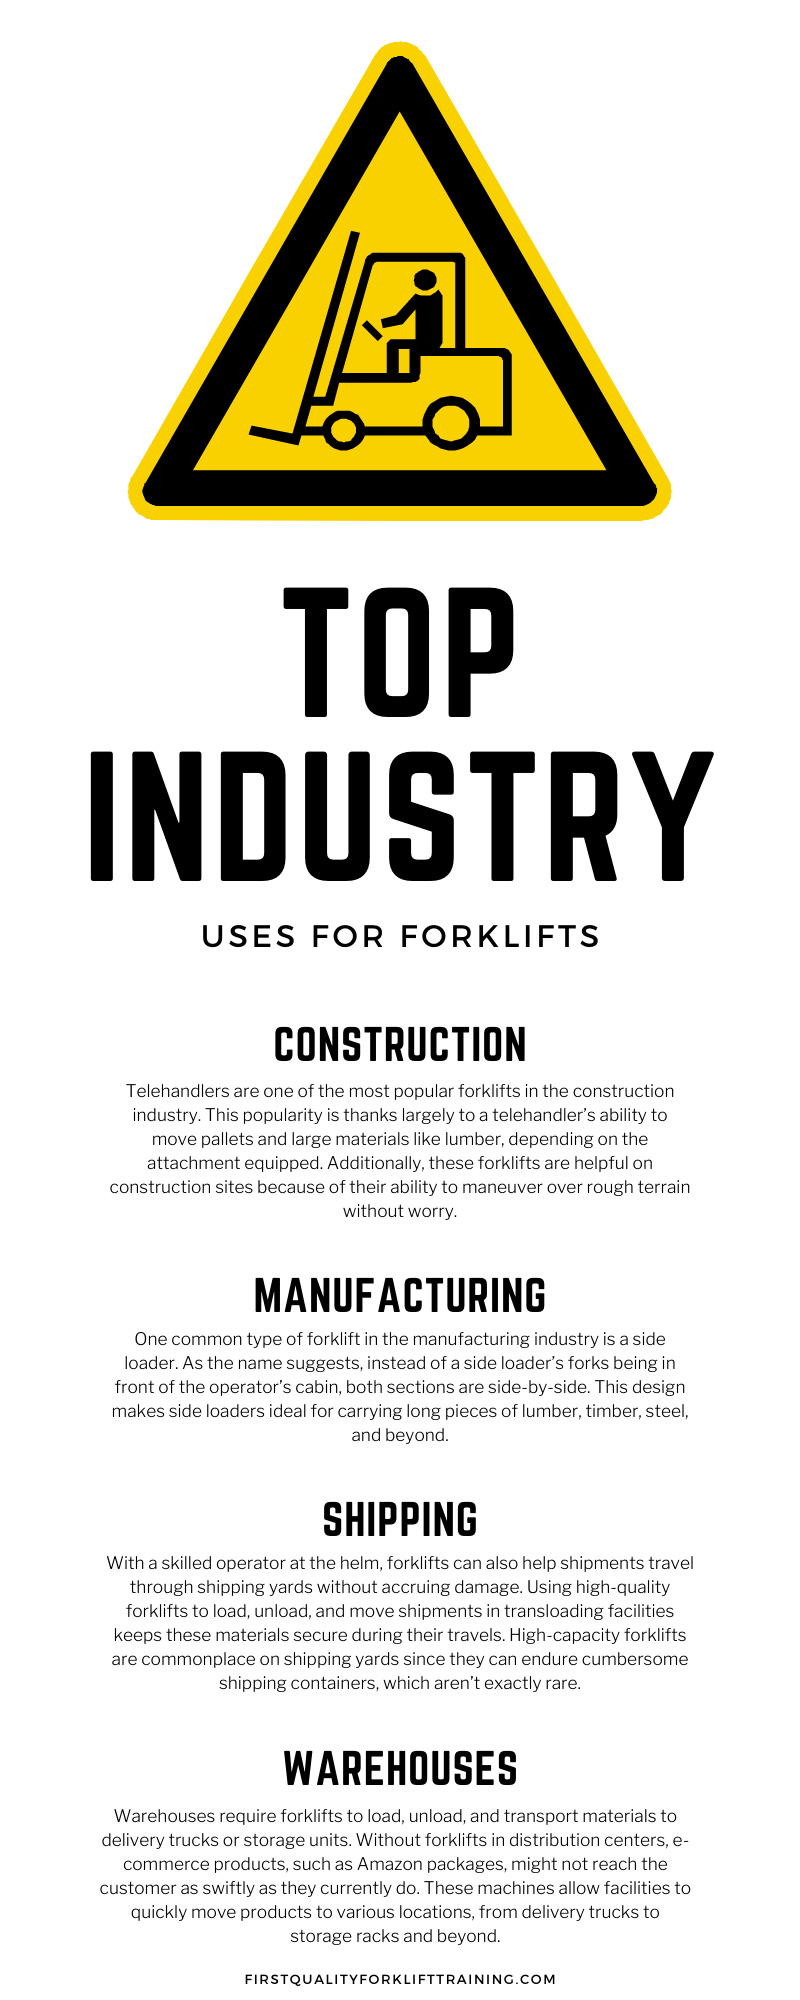 Top Industry Uses for Forklifts